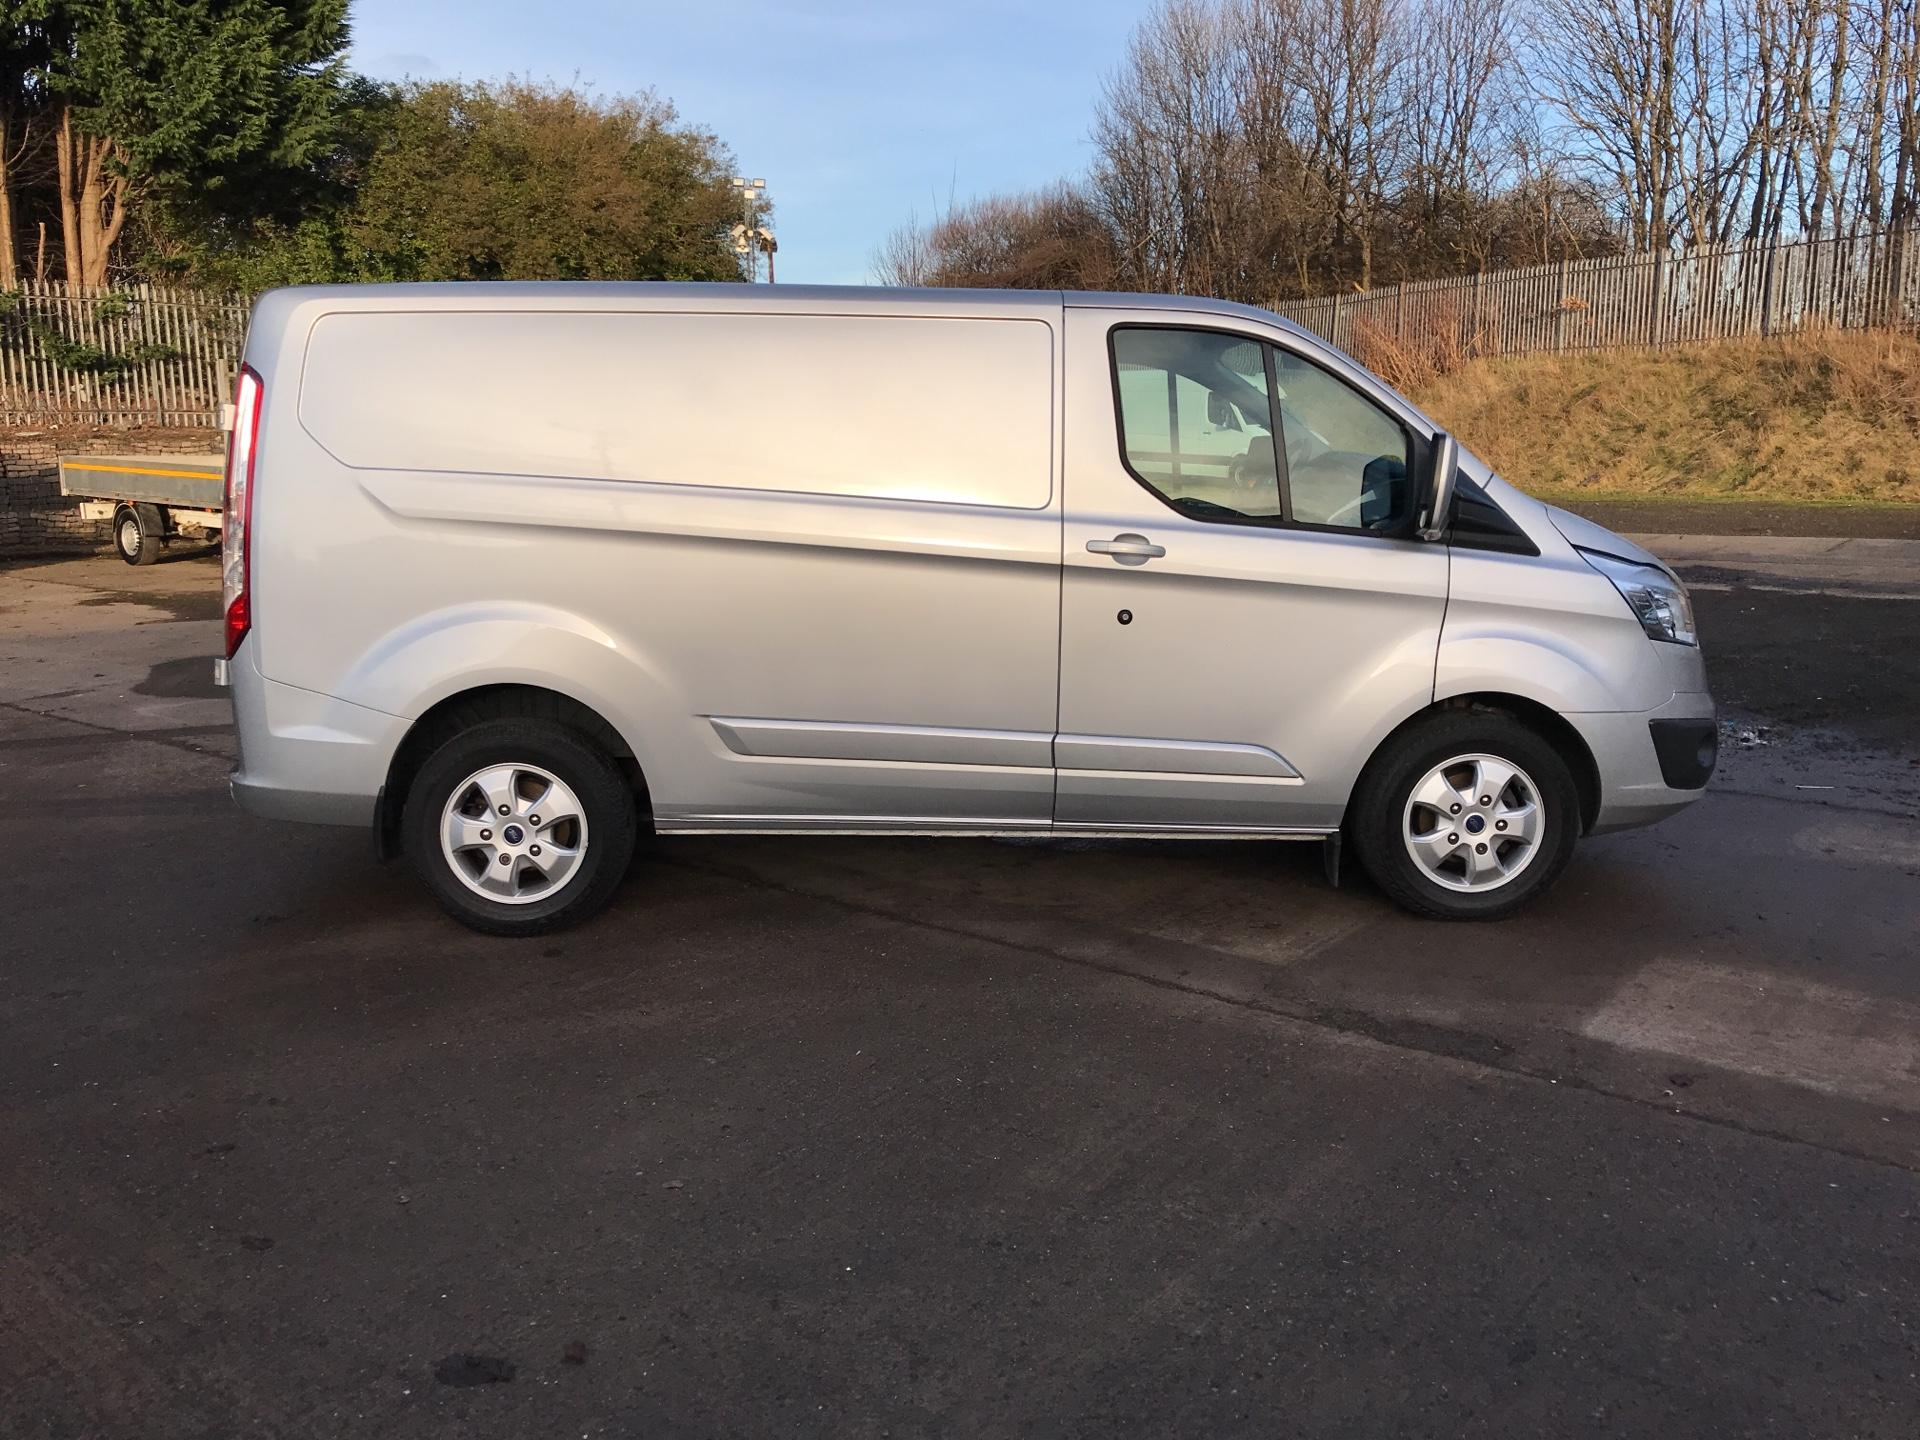 2017 Ford Transit Custom 270 L1 DIESEL FWD 2.0 TDCI 130PS LOW ROOF LIMITED VAN EURO 6 (CY67AVD) Image 2